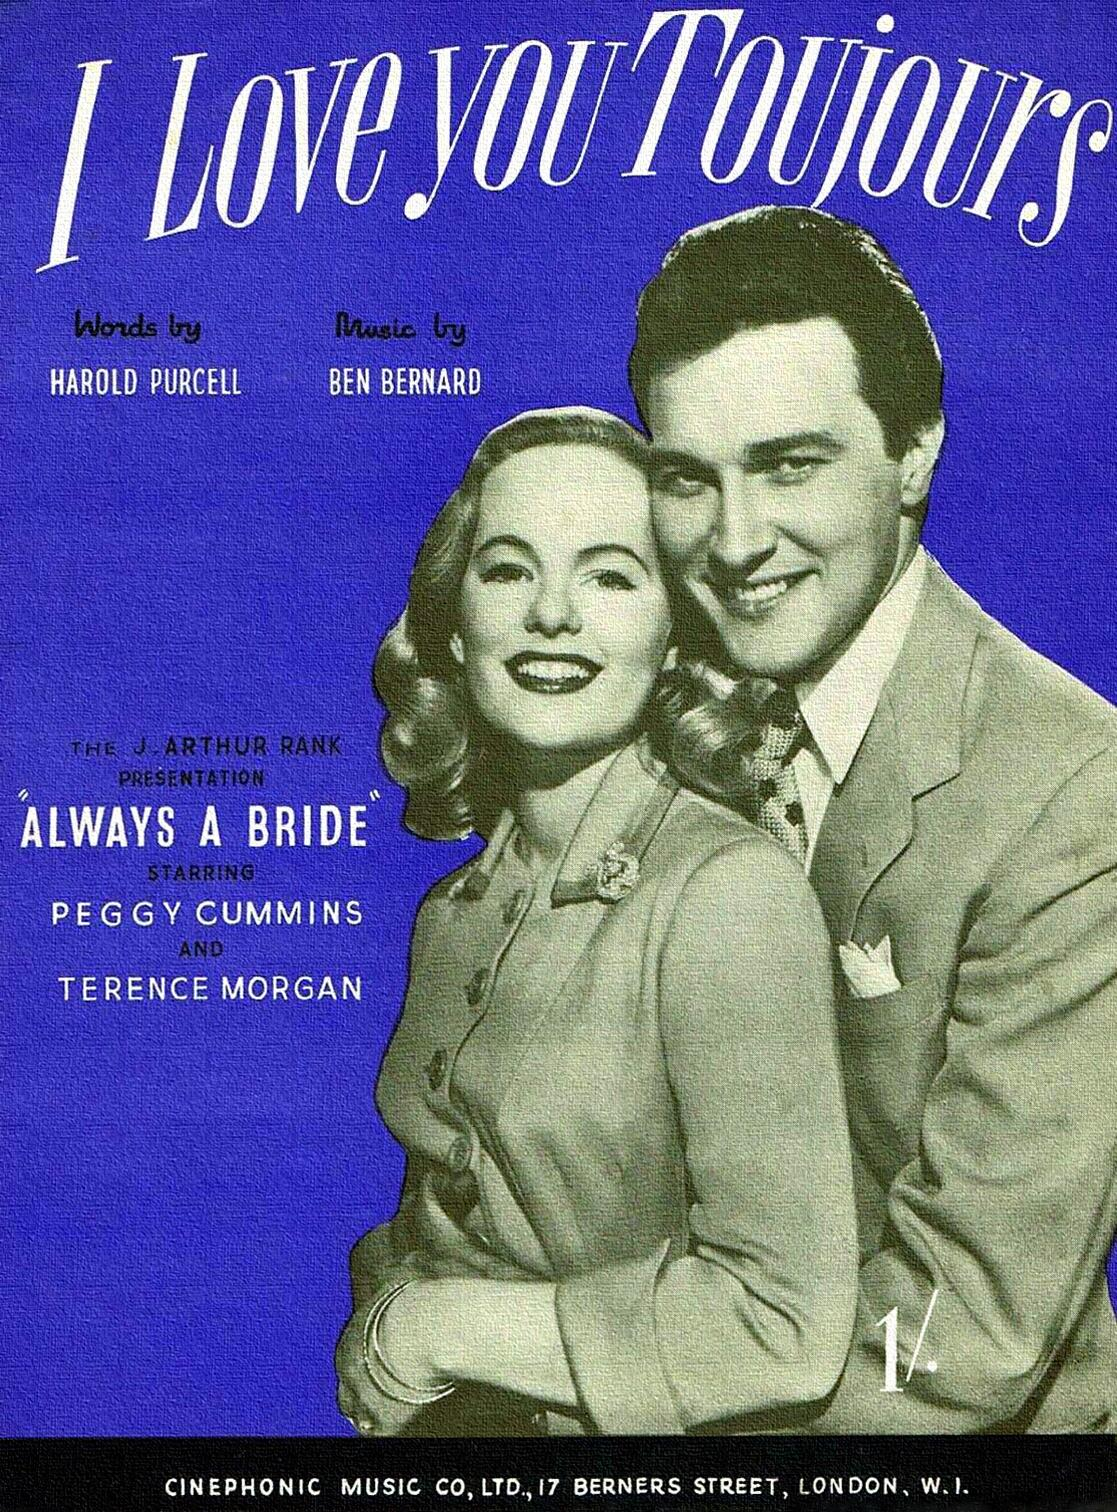 Peggy Cummins and Terence Morgan in Always a Bride (1953)